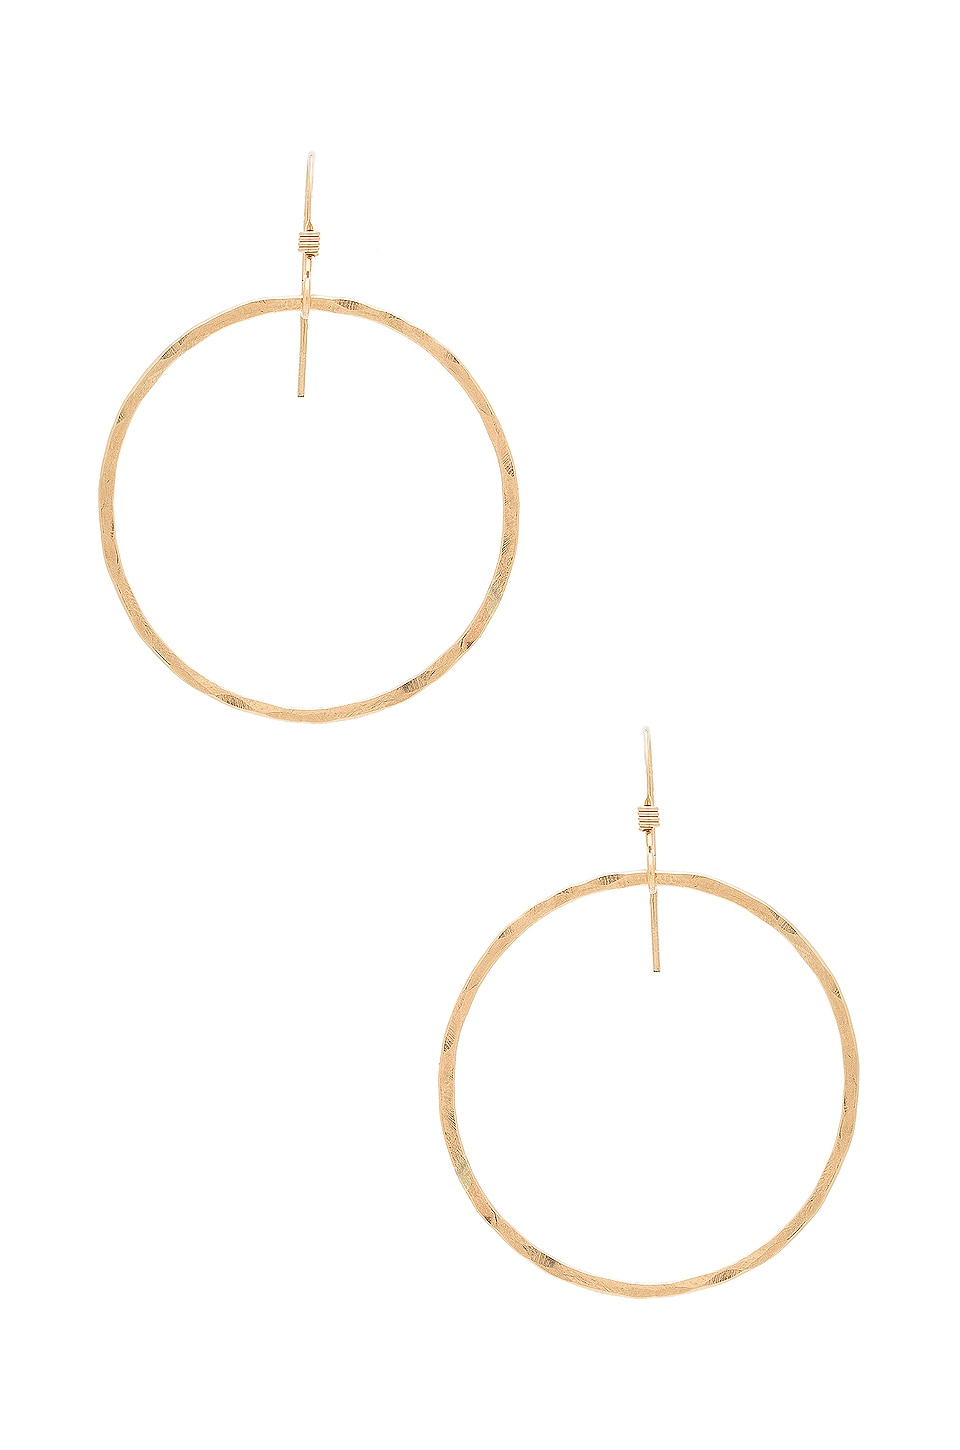 Mimi & Lu Jackson Earrings in Gold